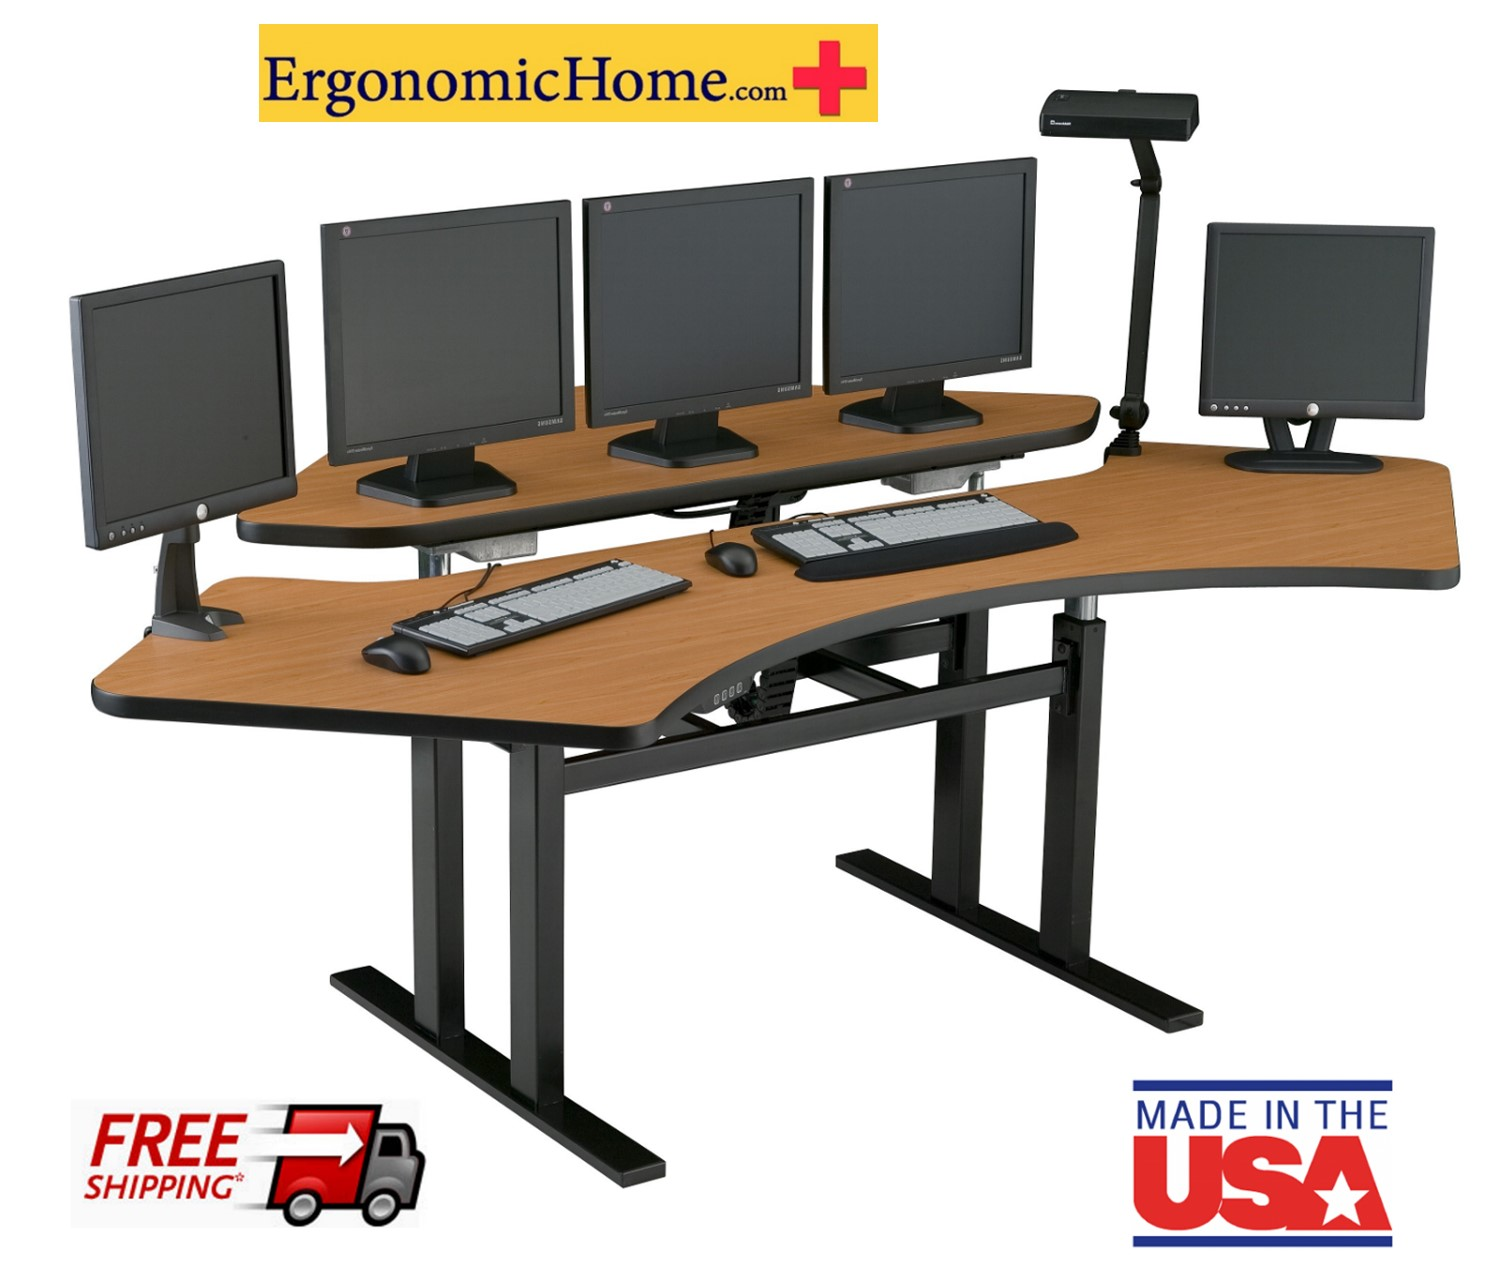 Ergonomic Home Corner Computer Desk Cnr 7273 Made In Usa